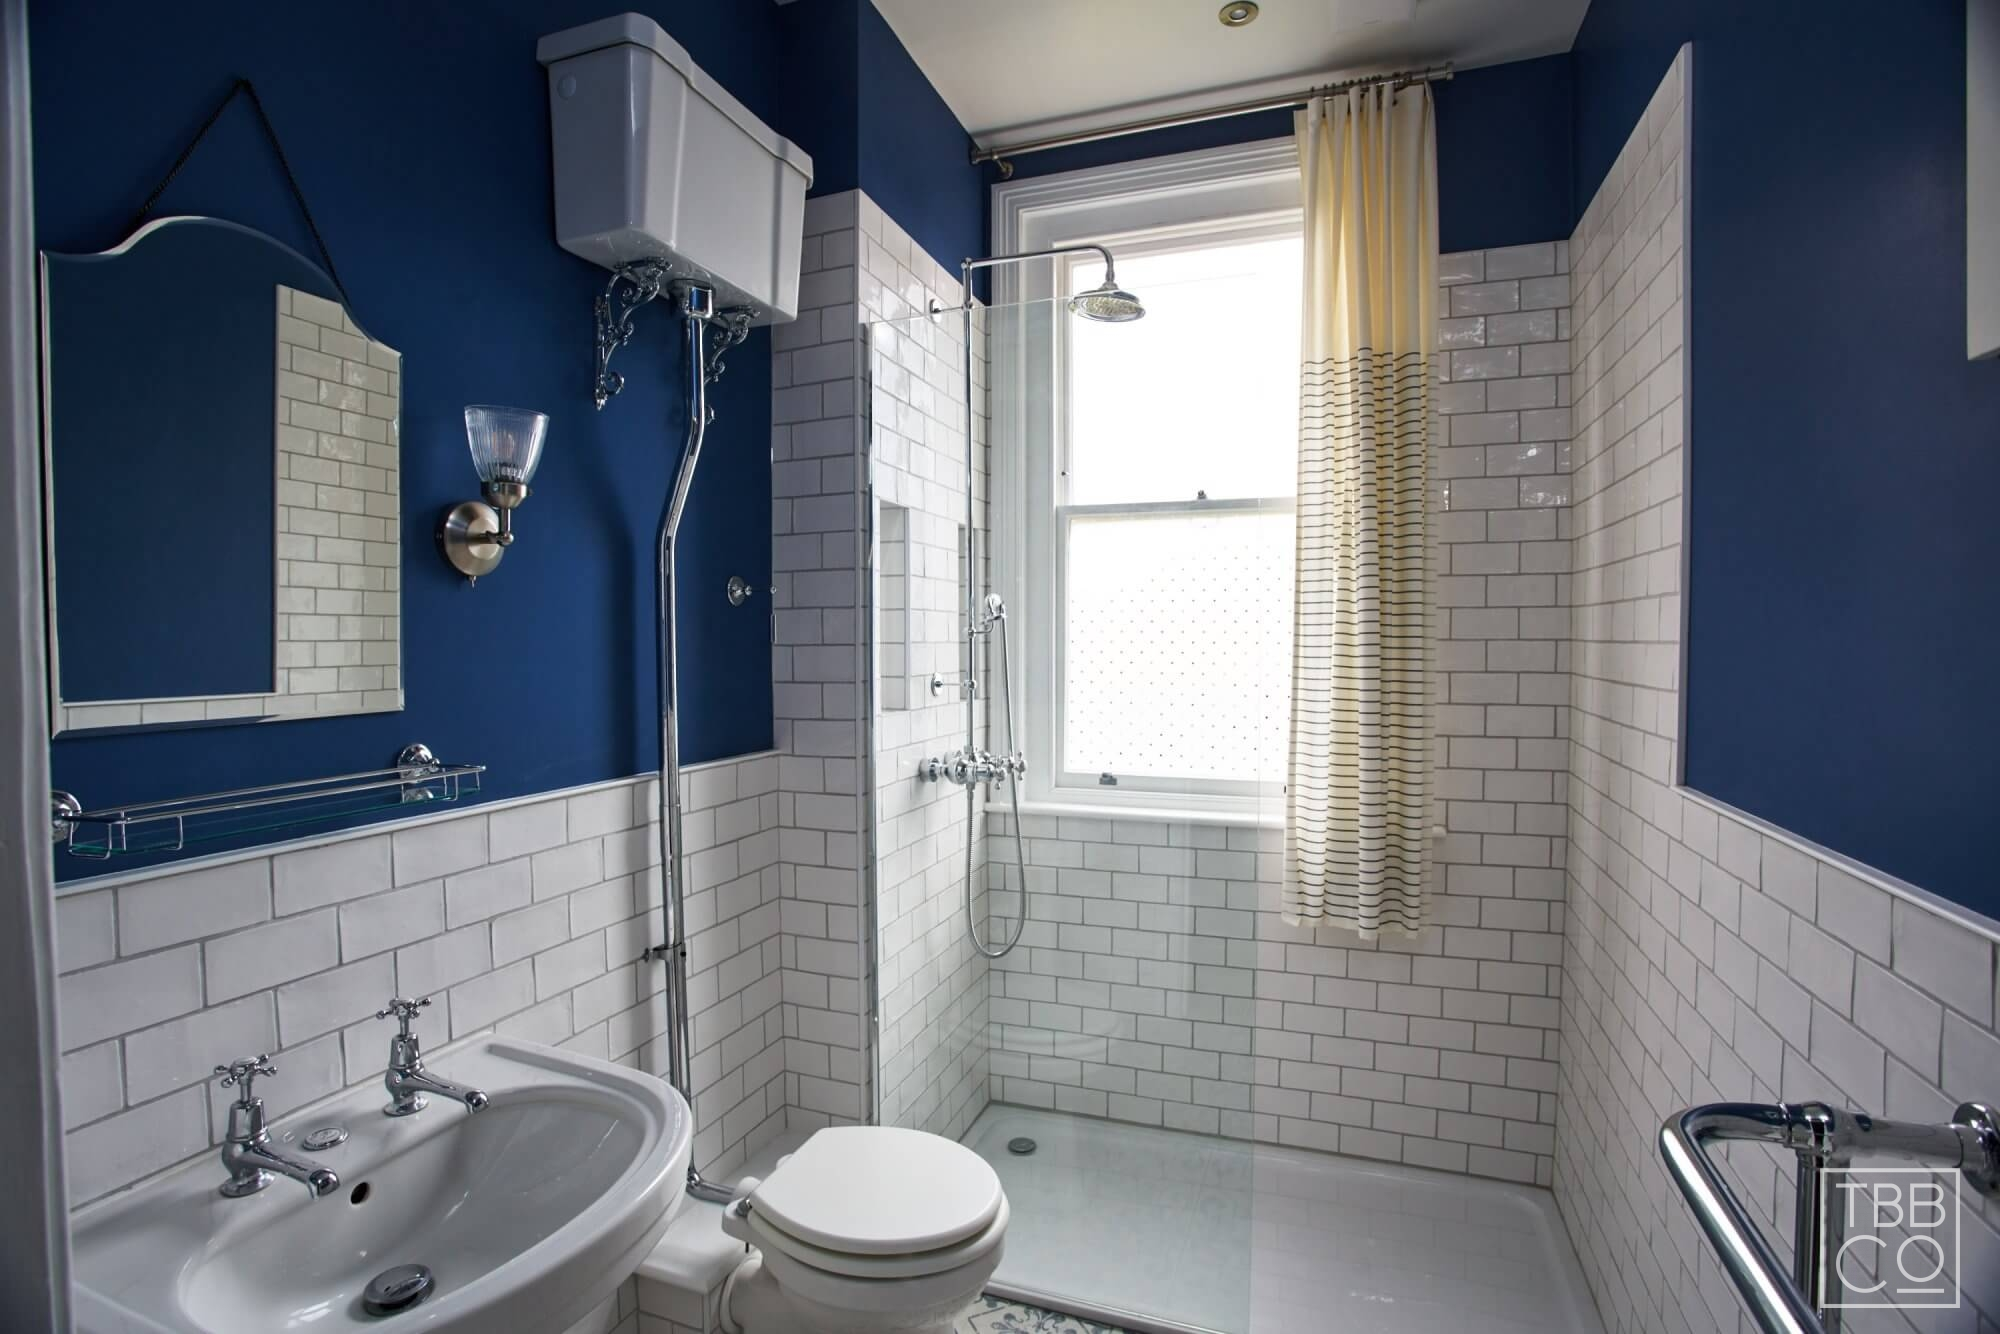 second bathroom in period property with blue accents and